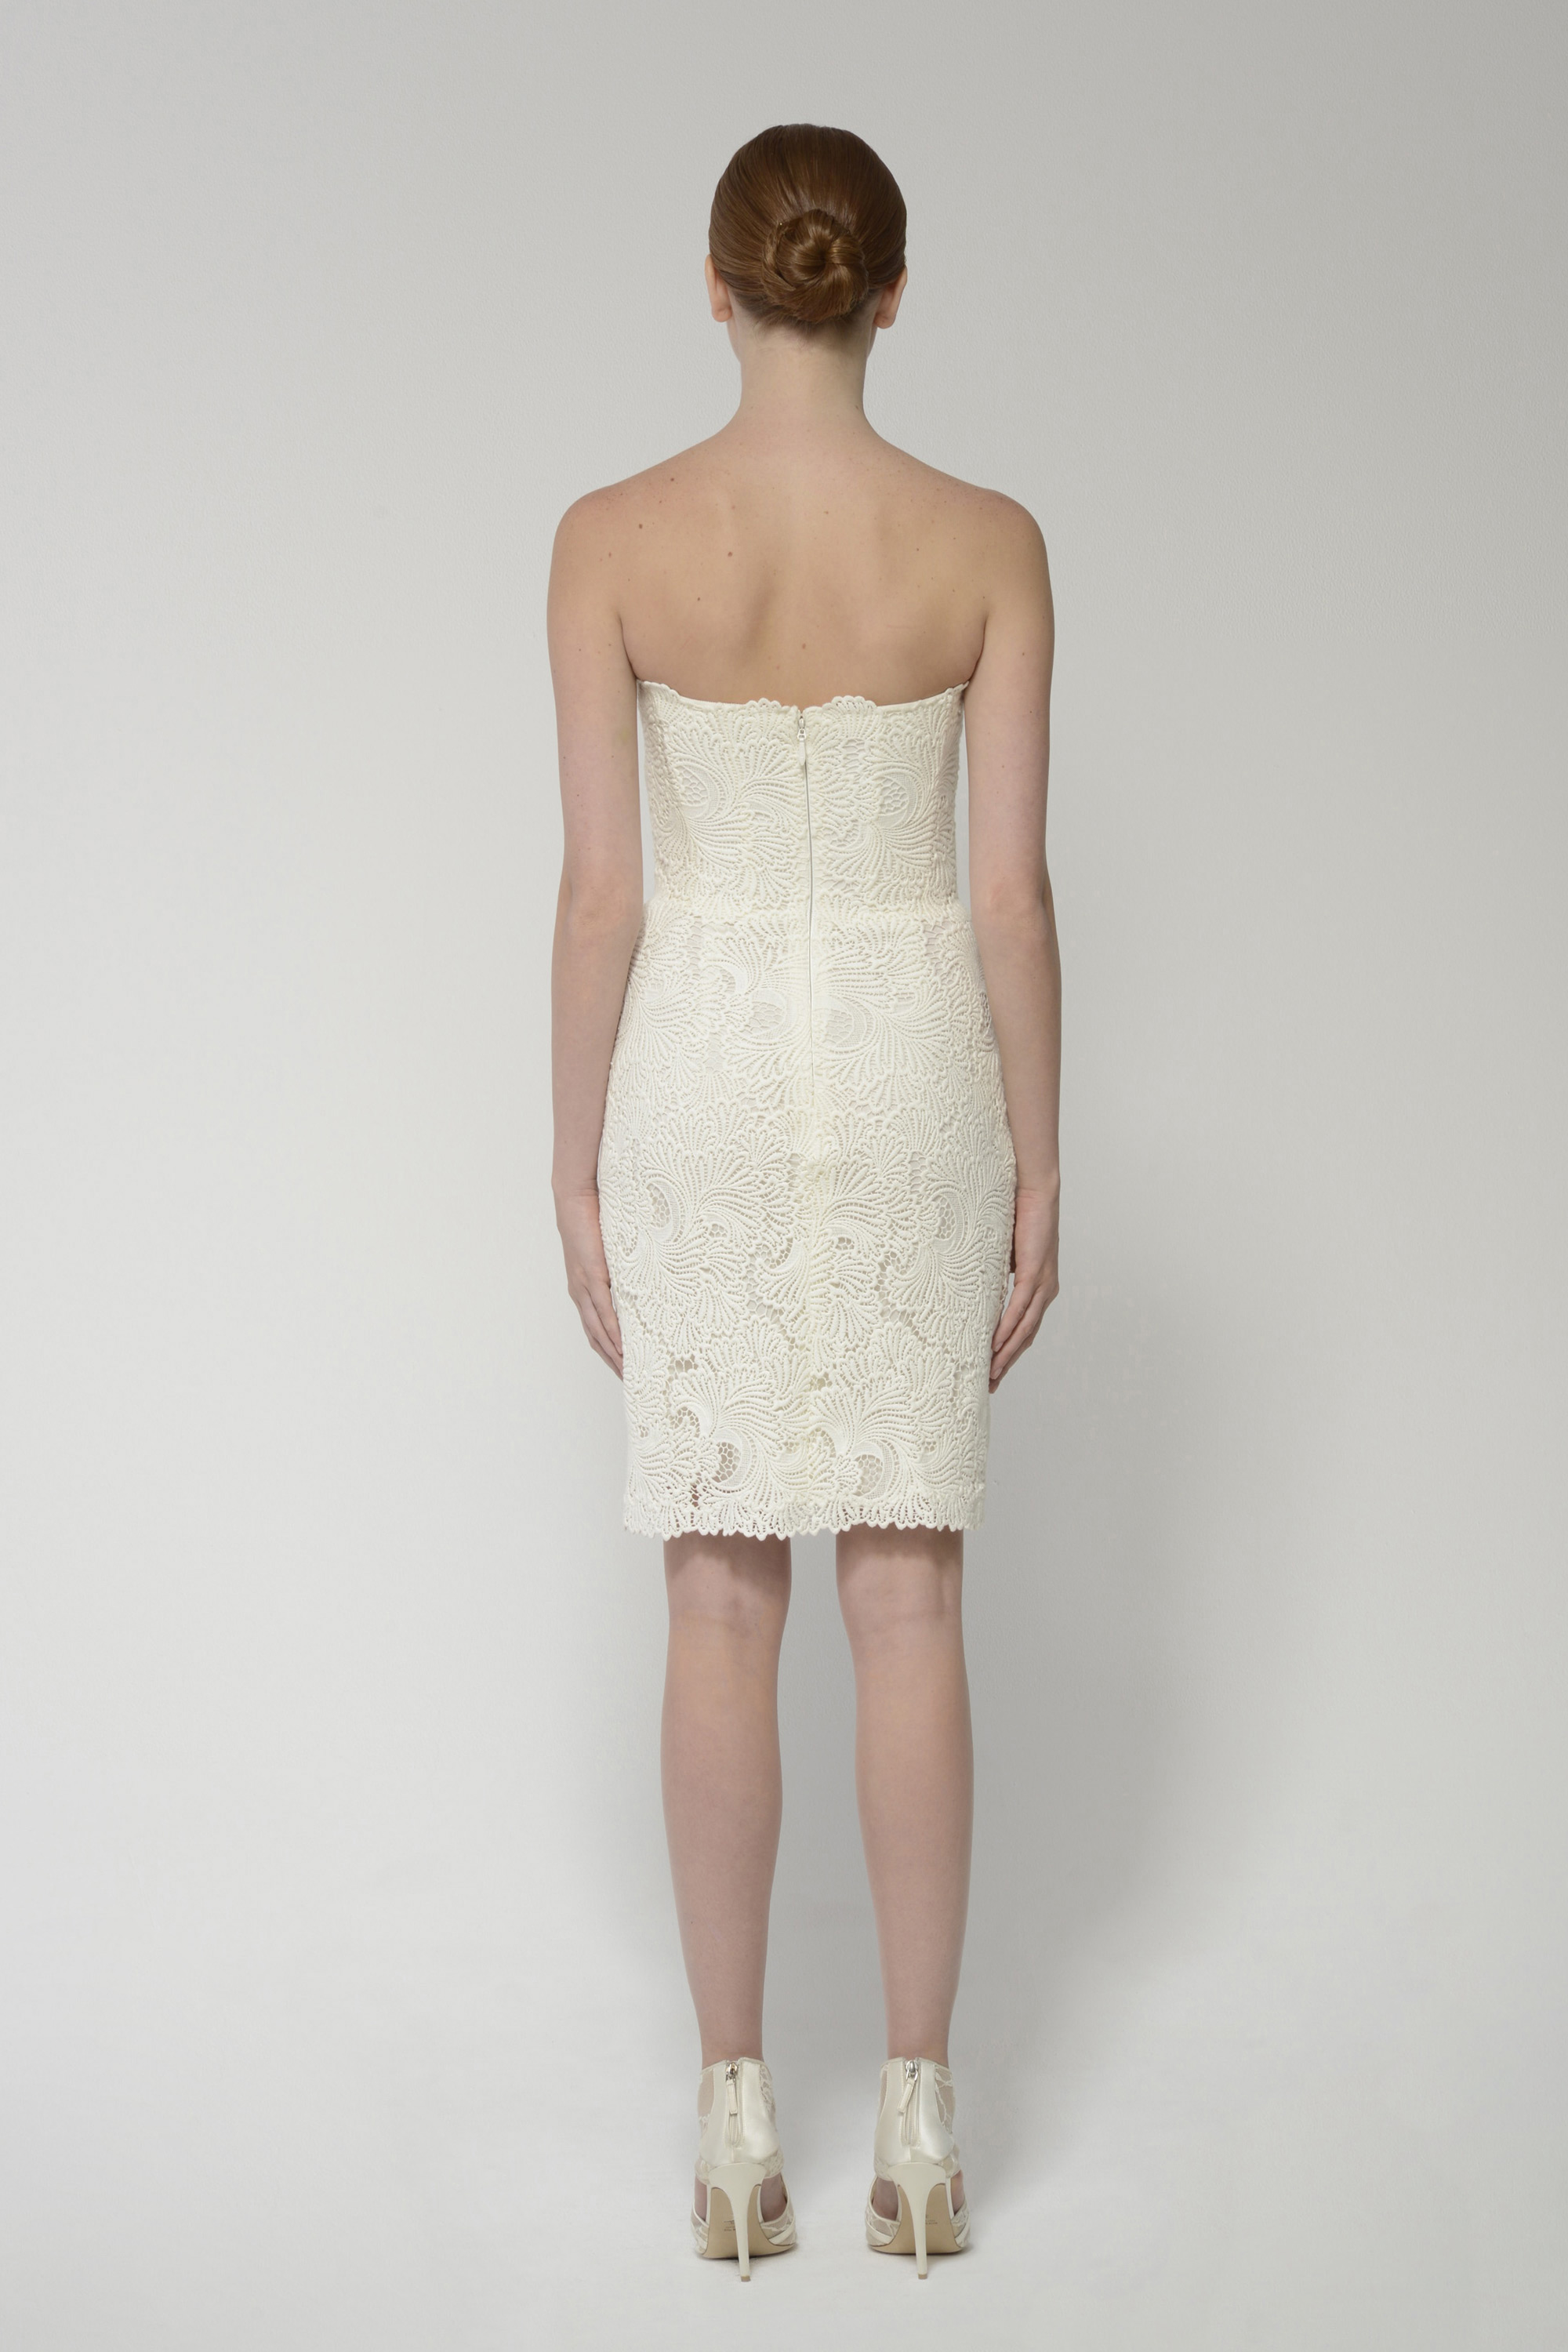 Andiedress ivory back 2